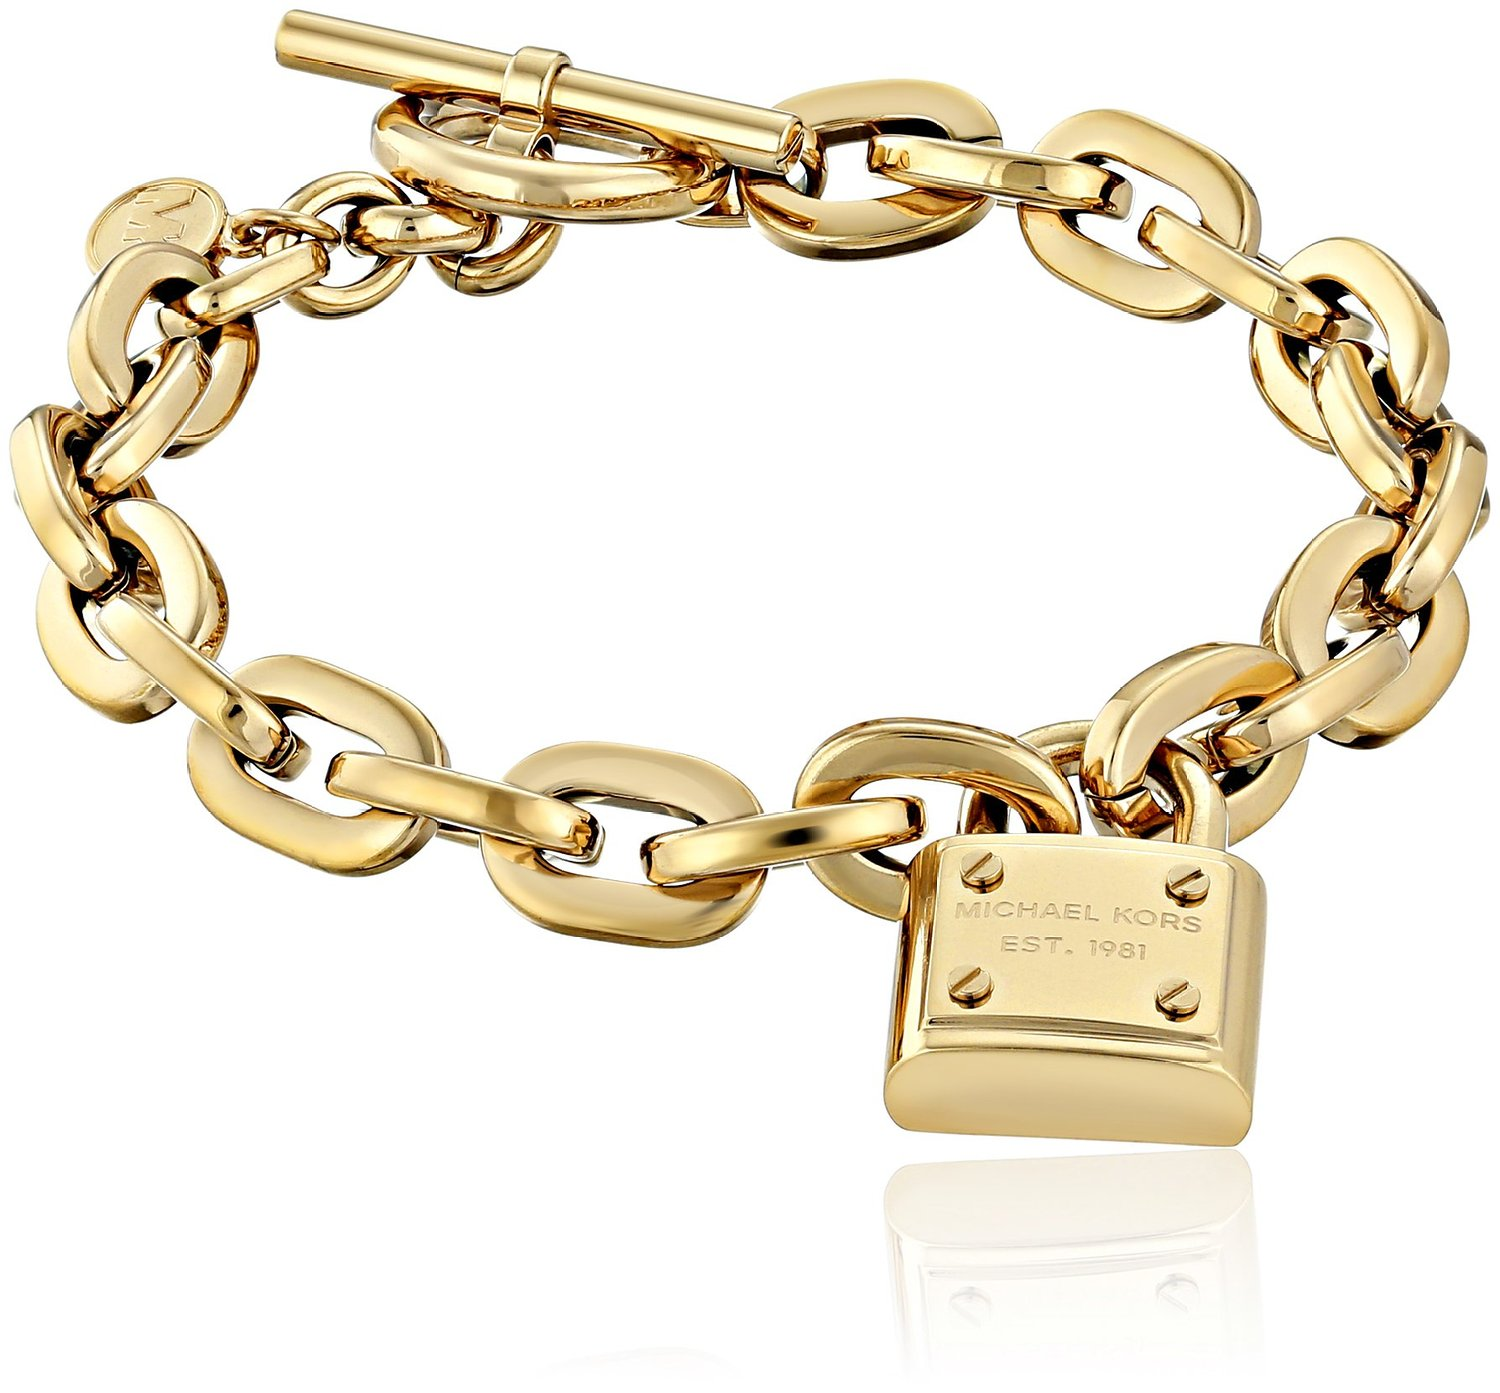 new michael kors gold chain toggle bracelet mk logo charm padlock mkj3311 ebay. Black Bedroom Furniture Sets. Home Design Ideas